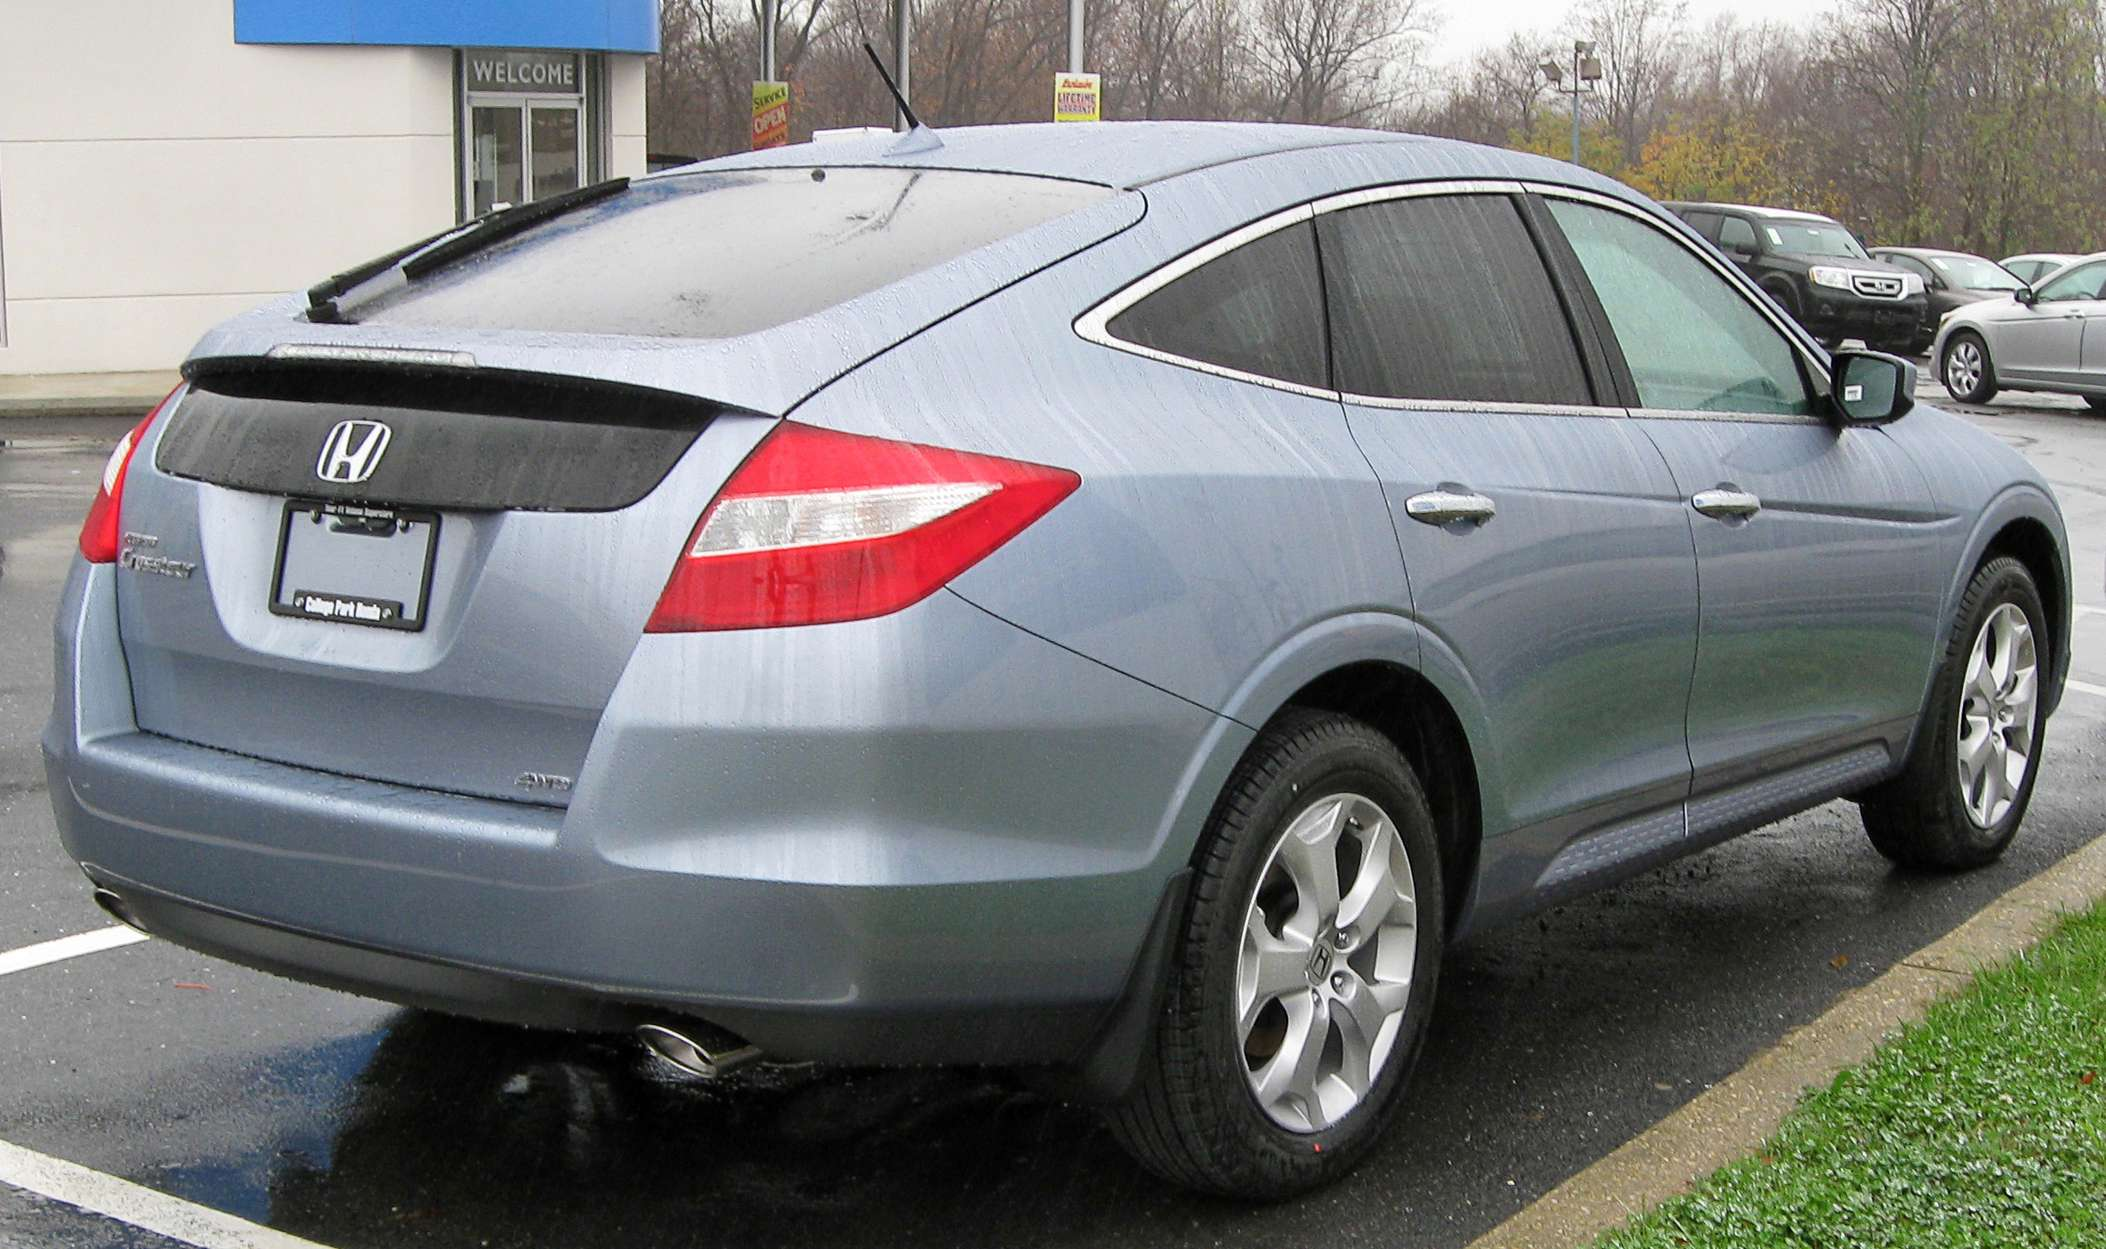 Honda Accord Crosstour #9052577